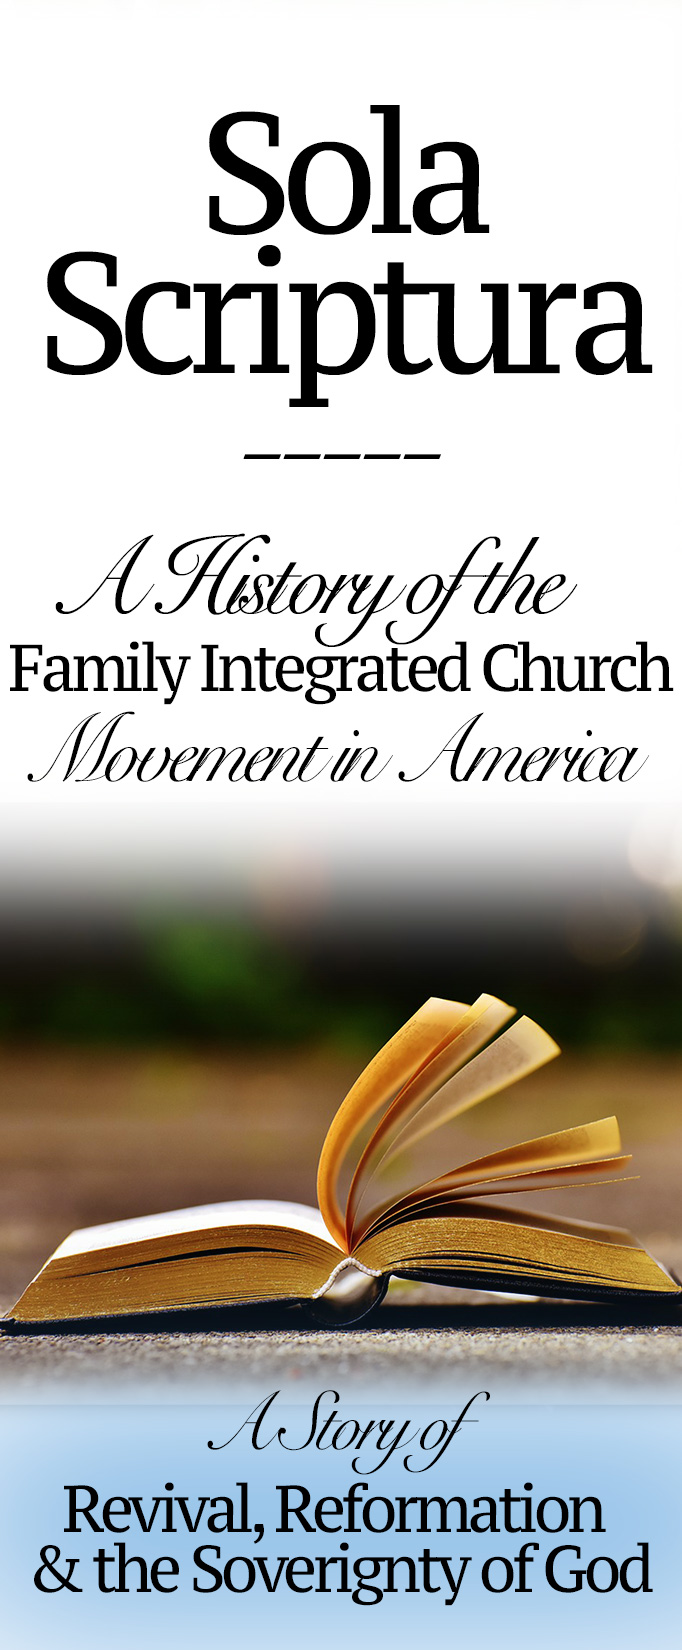 In about 2000, families started practically following the patterns laid out in the Bible in their families and churches. Thus was birthed the family integrated churches! Here's that history…